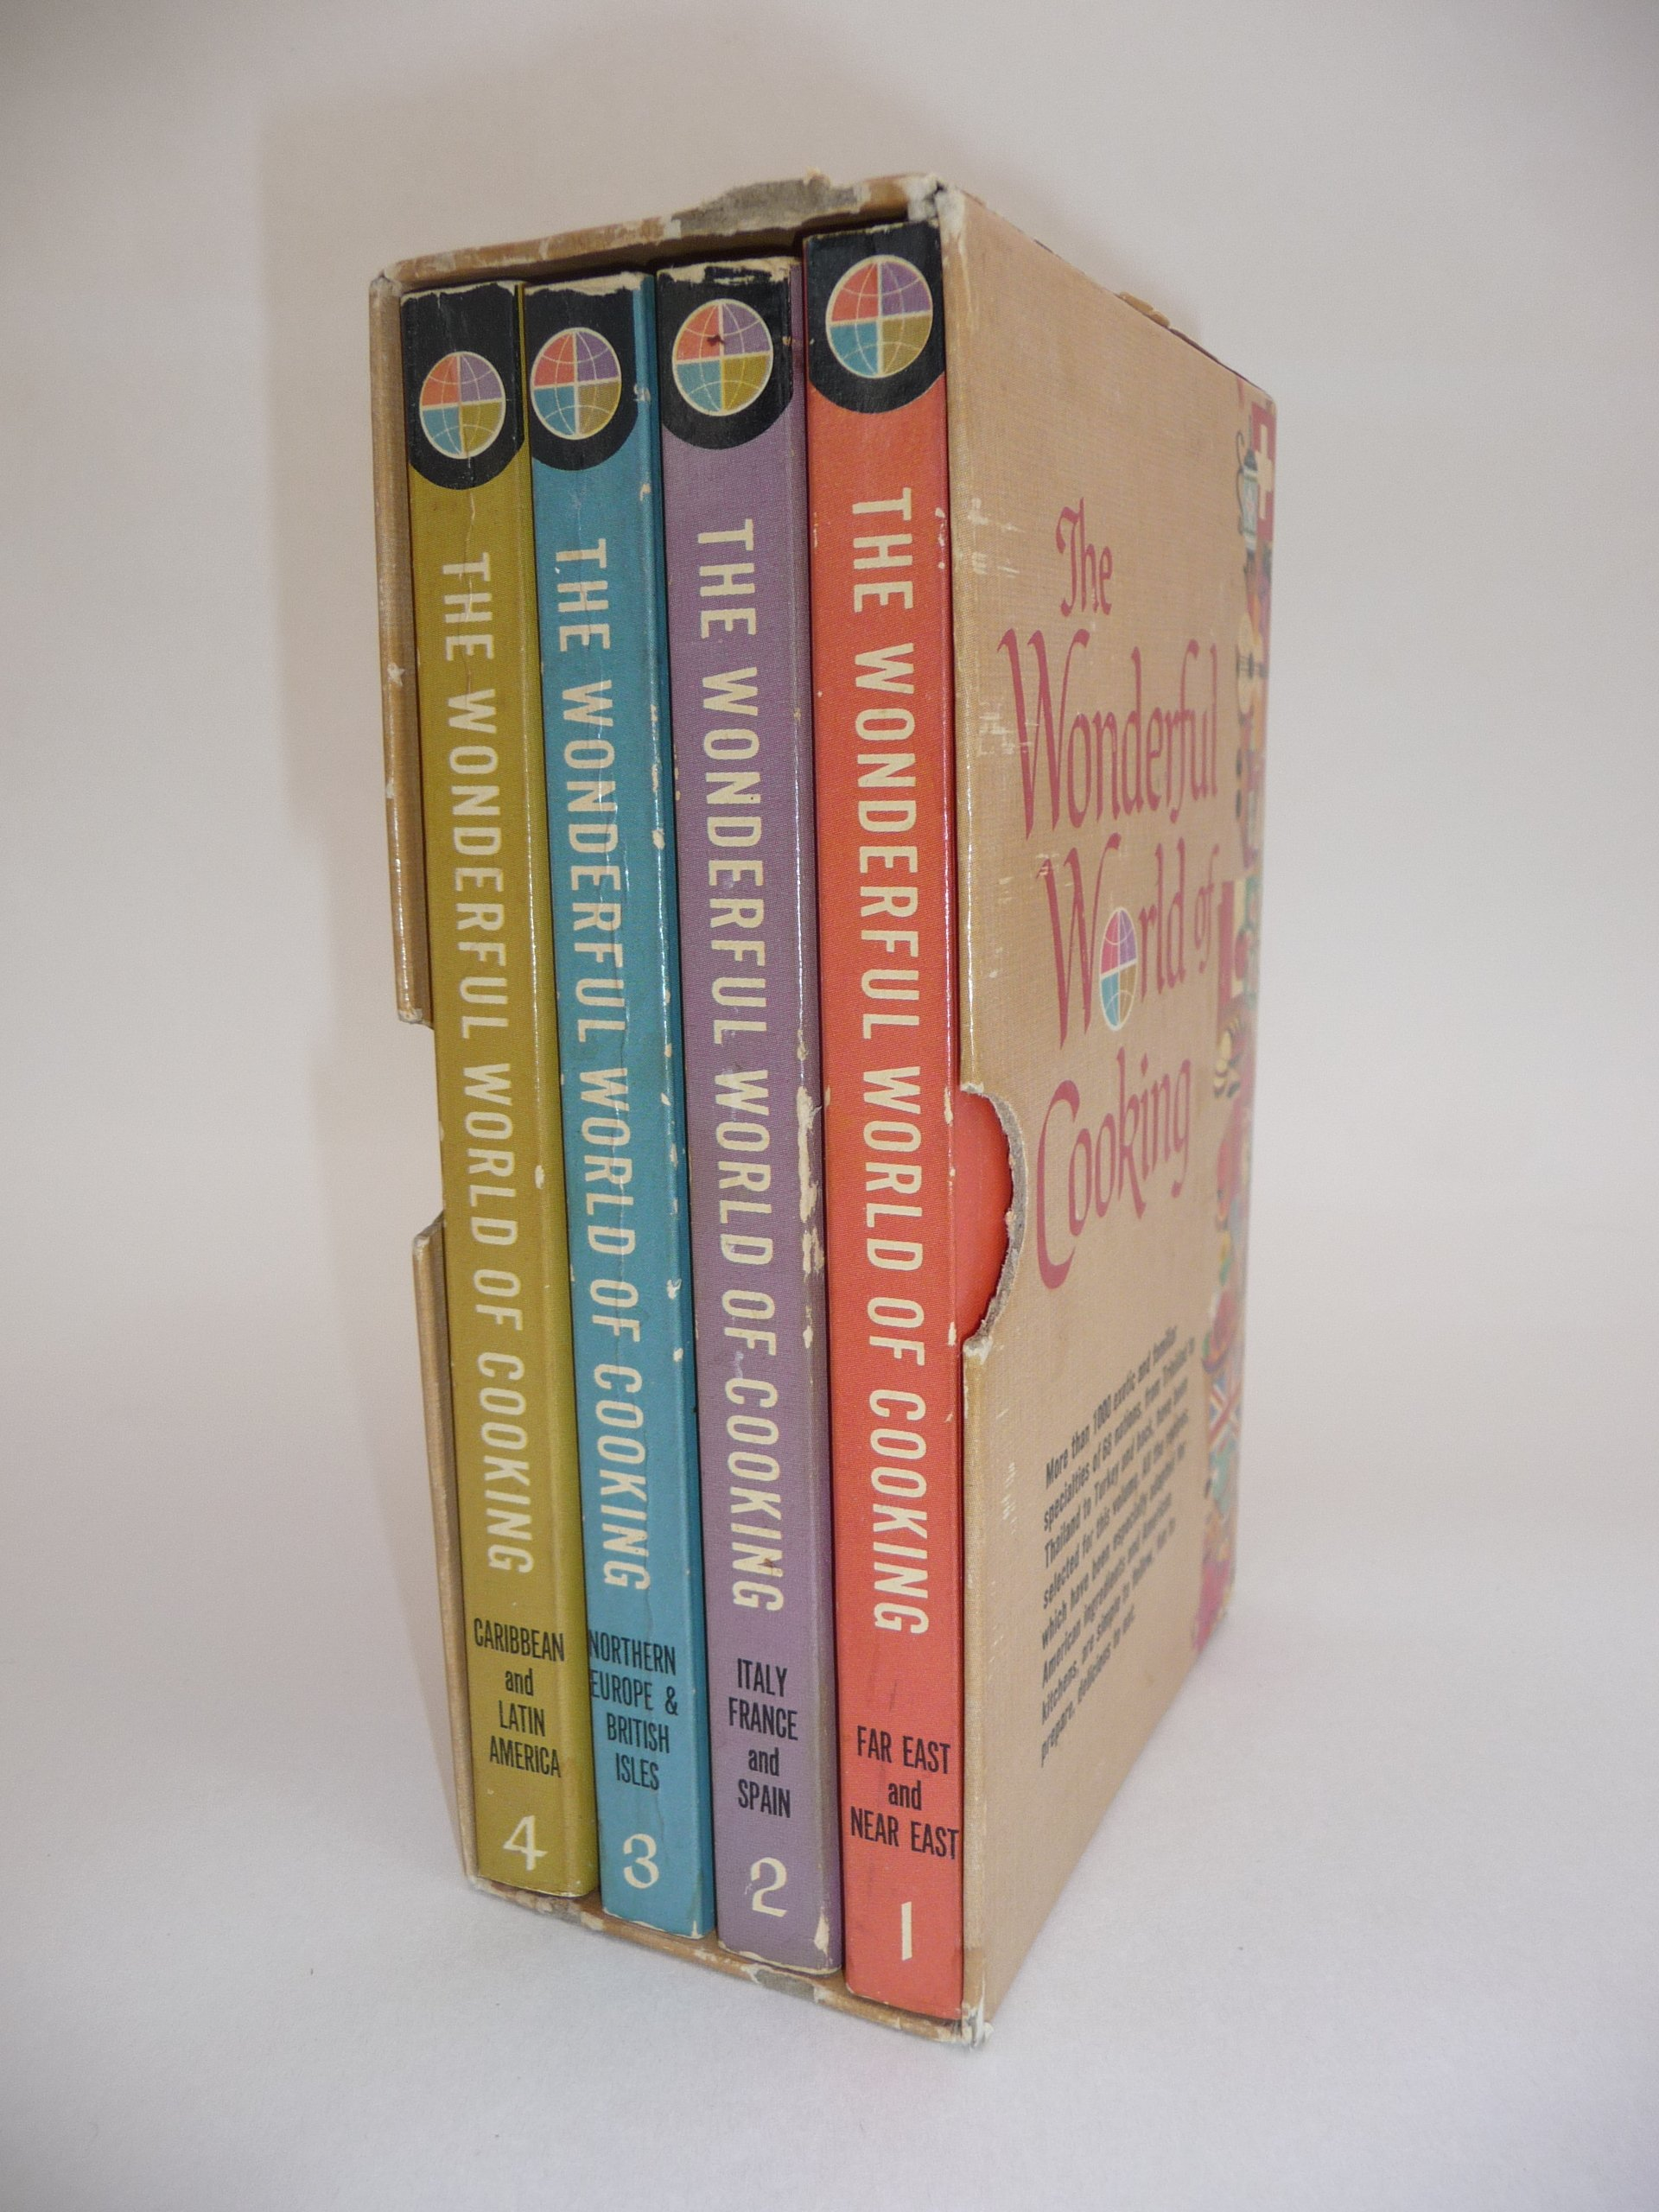 The Wonderful World of Cooking Volumes 1-4 Boxed Set